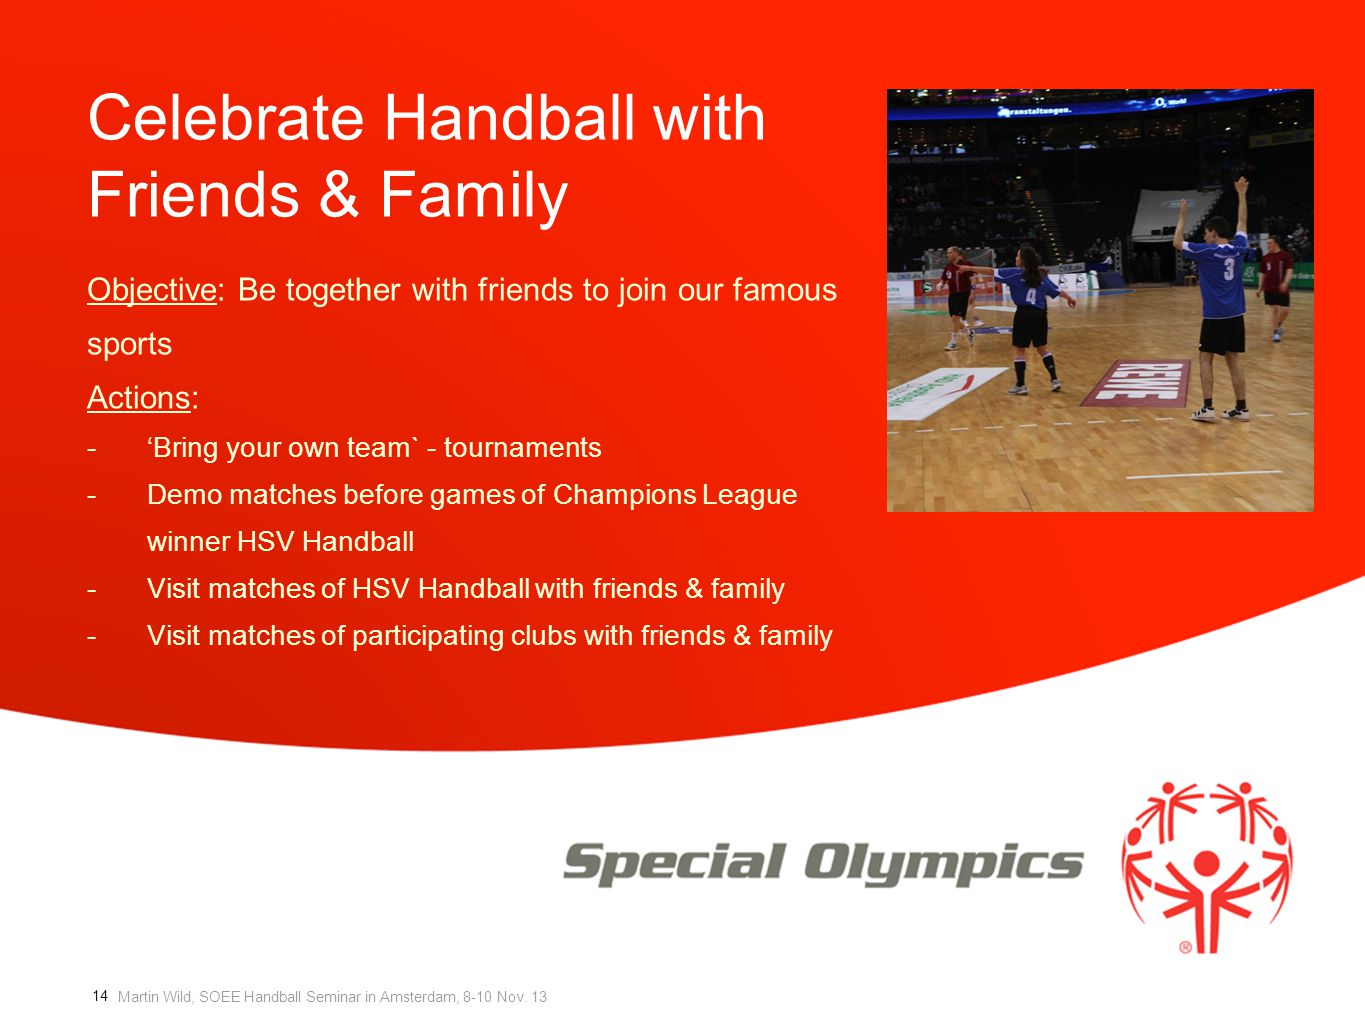 Celebrate Handball with Friends & Family